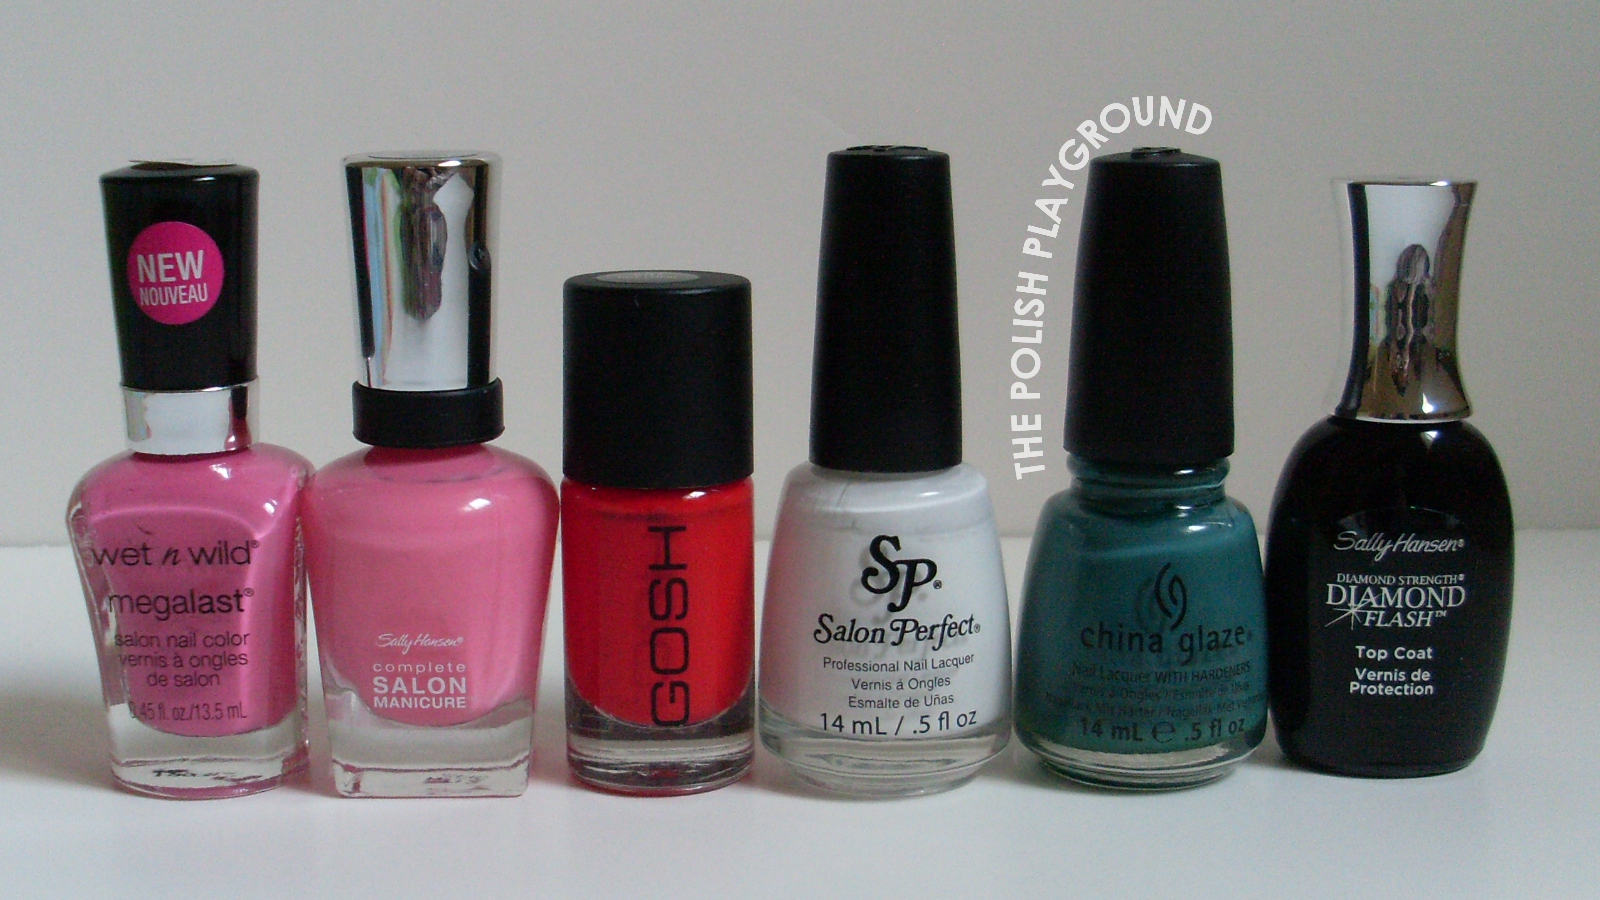 Wet n' Wild, Sally Hansen, Gosh, Salon Perfect, China Glaze